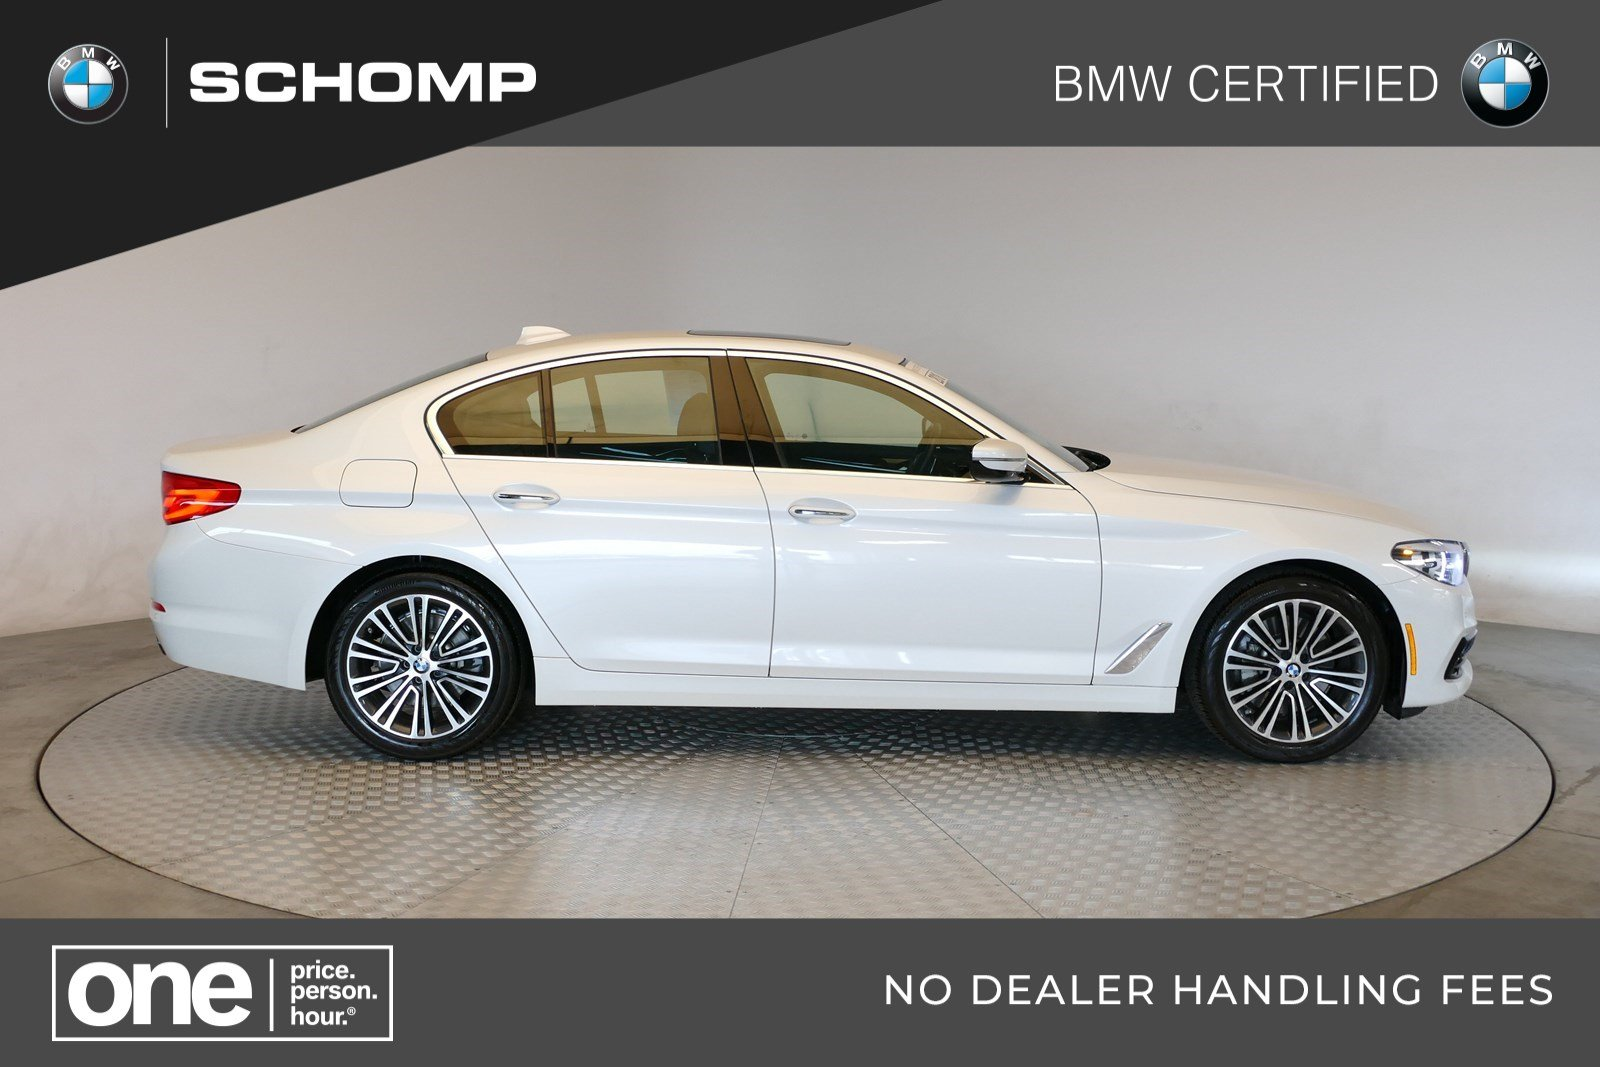 Certified Pre Owned BMW >> Certified Pre Owned Bmw 2018 5 Series 530i Xdrive Awd